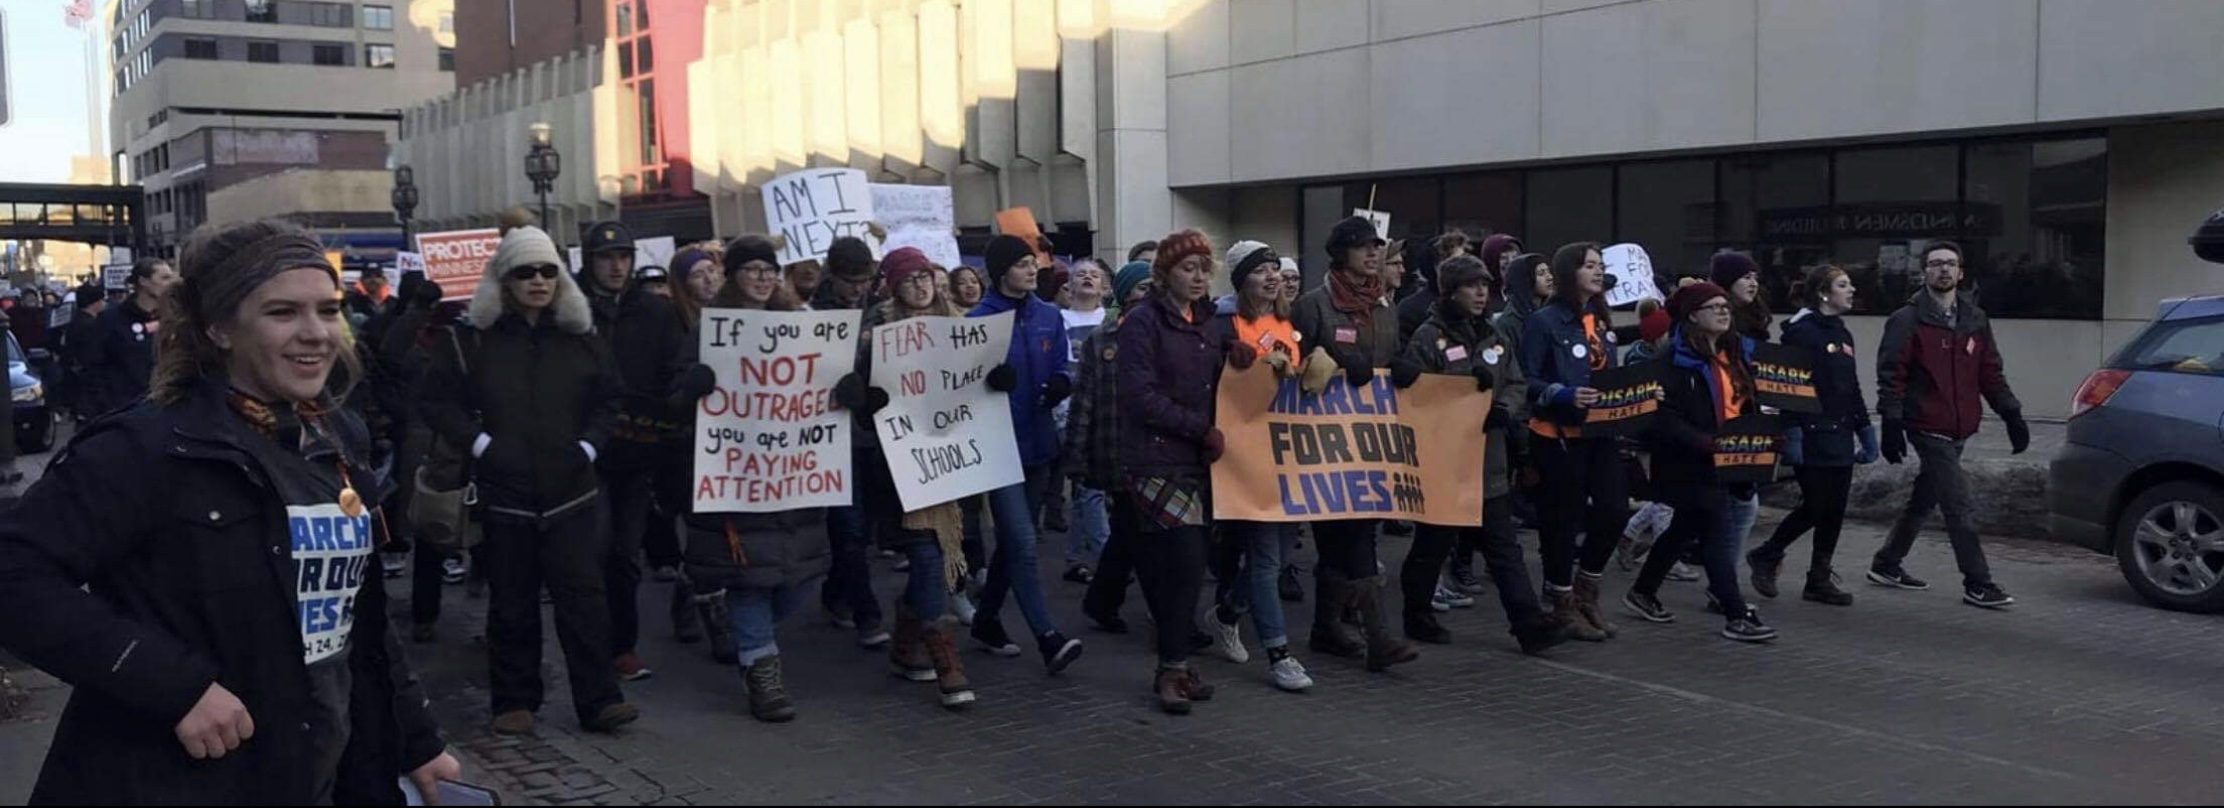 Mary Franz participates in numerous local movements, like the March For Our Lives Event pictured here. Photo courtesy Mary Franz